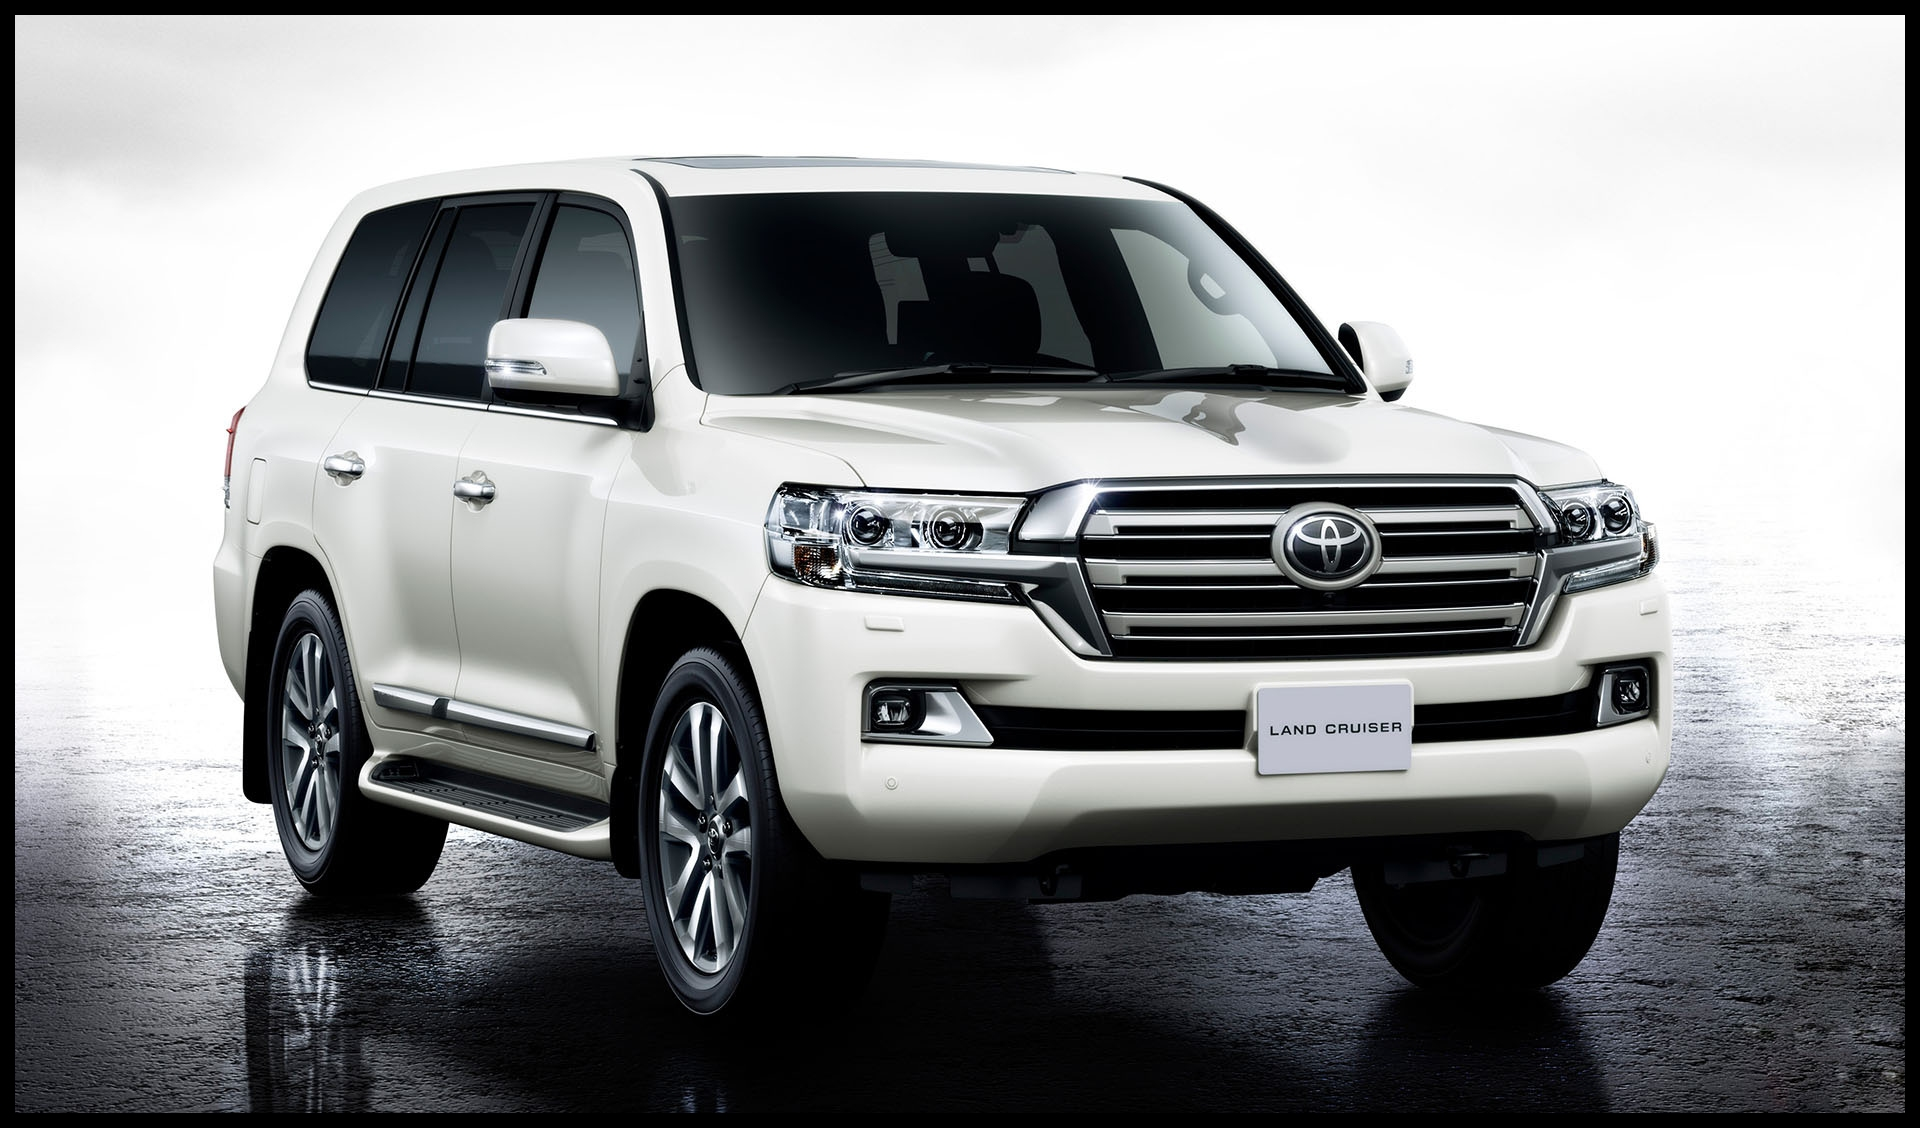 Special toyota Land Cruiser 2016 Land Cruiser V8 2017 Price In Pakistan New Review